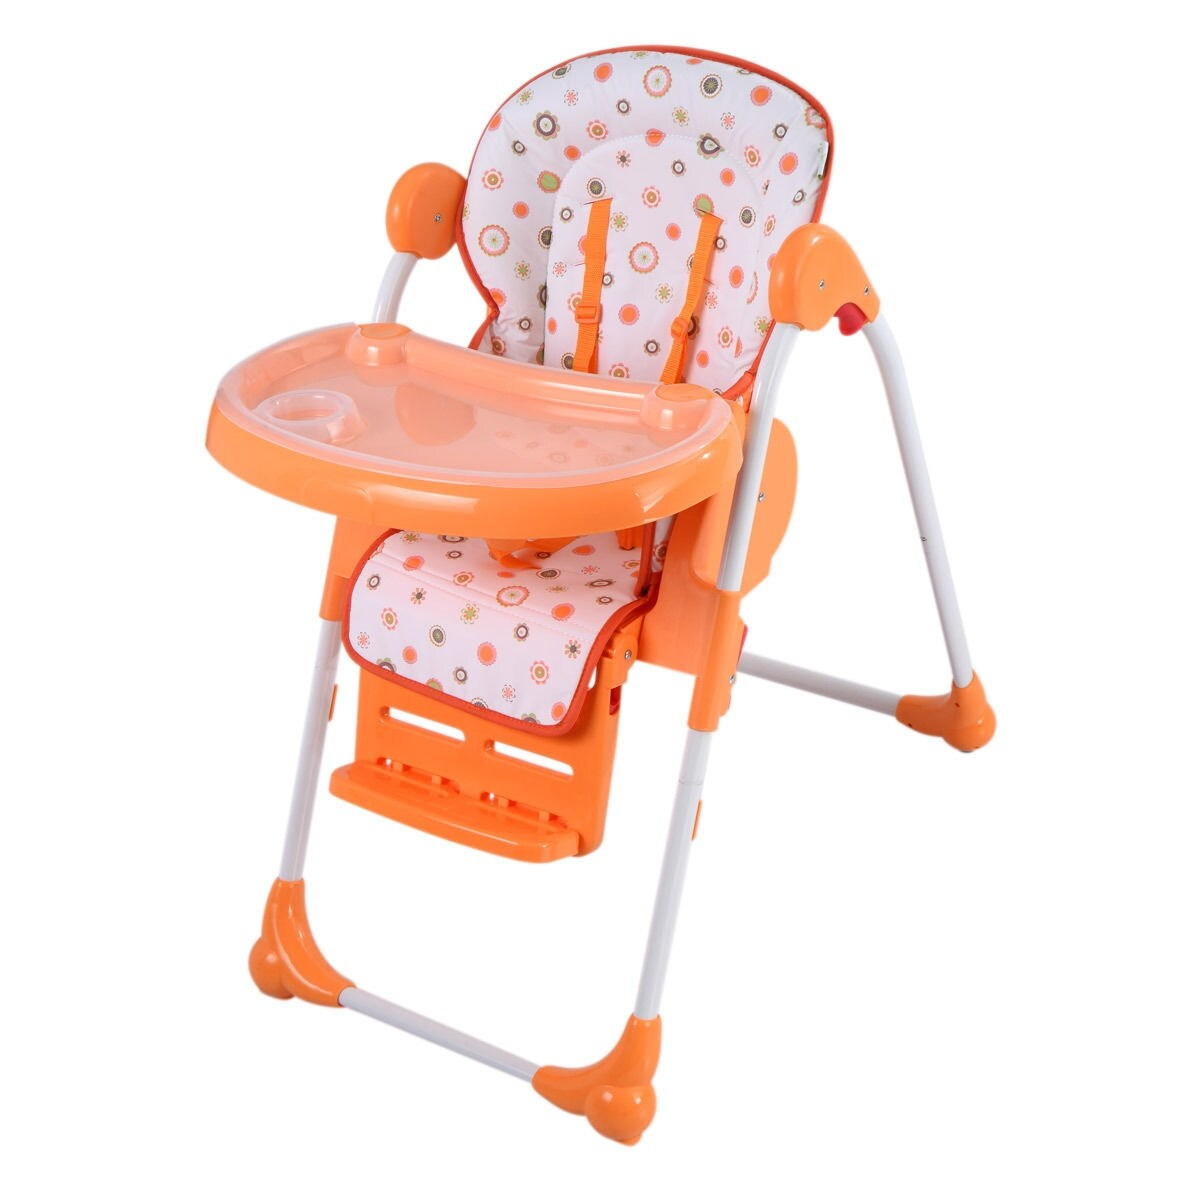 booster seat or high chair which is better knoll dining chairs shop adjustable baby infant toddler feeding folding orange free shipping today overstock com 18512996